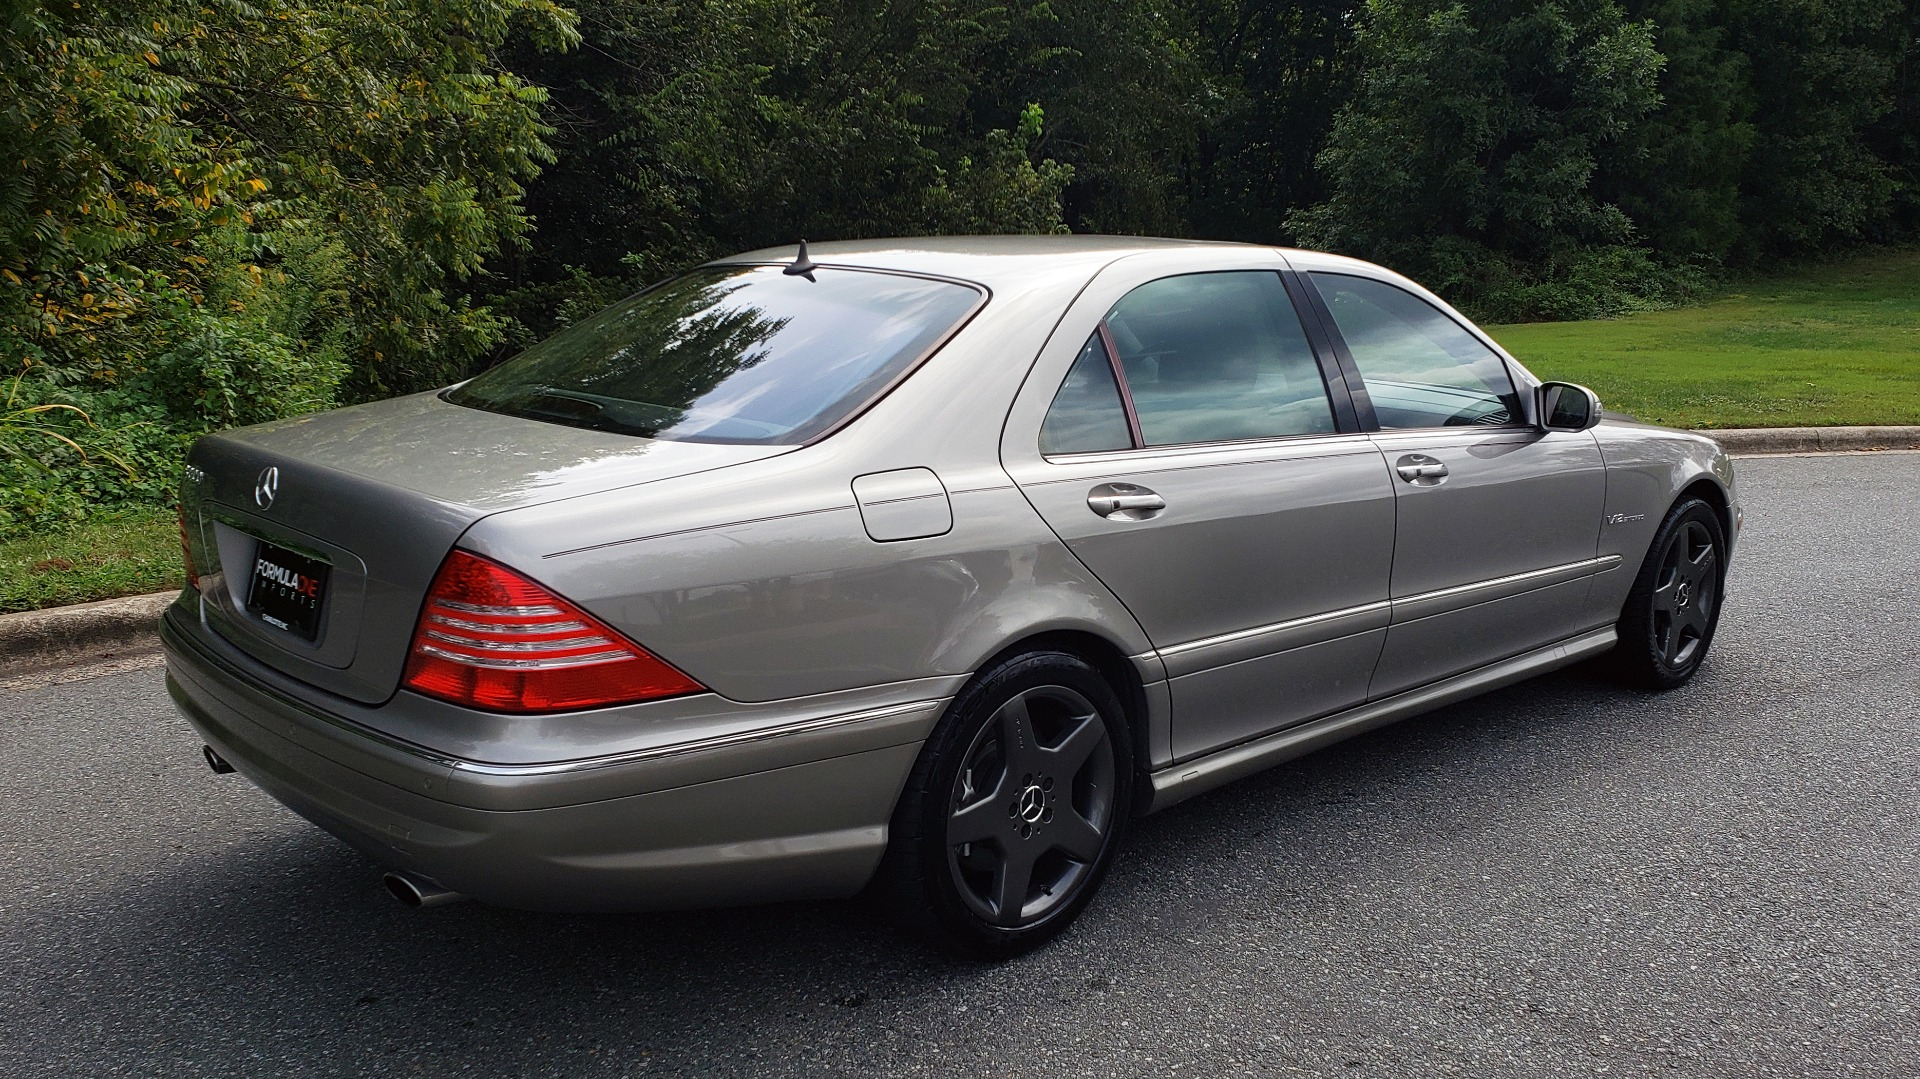 Used 2003 Mercedes-Benz S-CLASS S600 5.5L V12 SEDAN / SUNROOF / KEYLESS-GO / BOSE for sale Sold at Formula Imports in Charlotte NC 28227 6